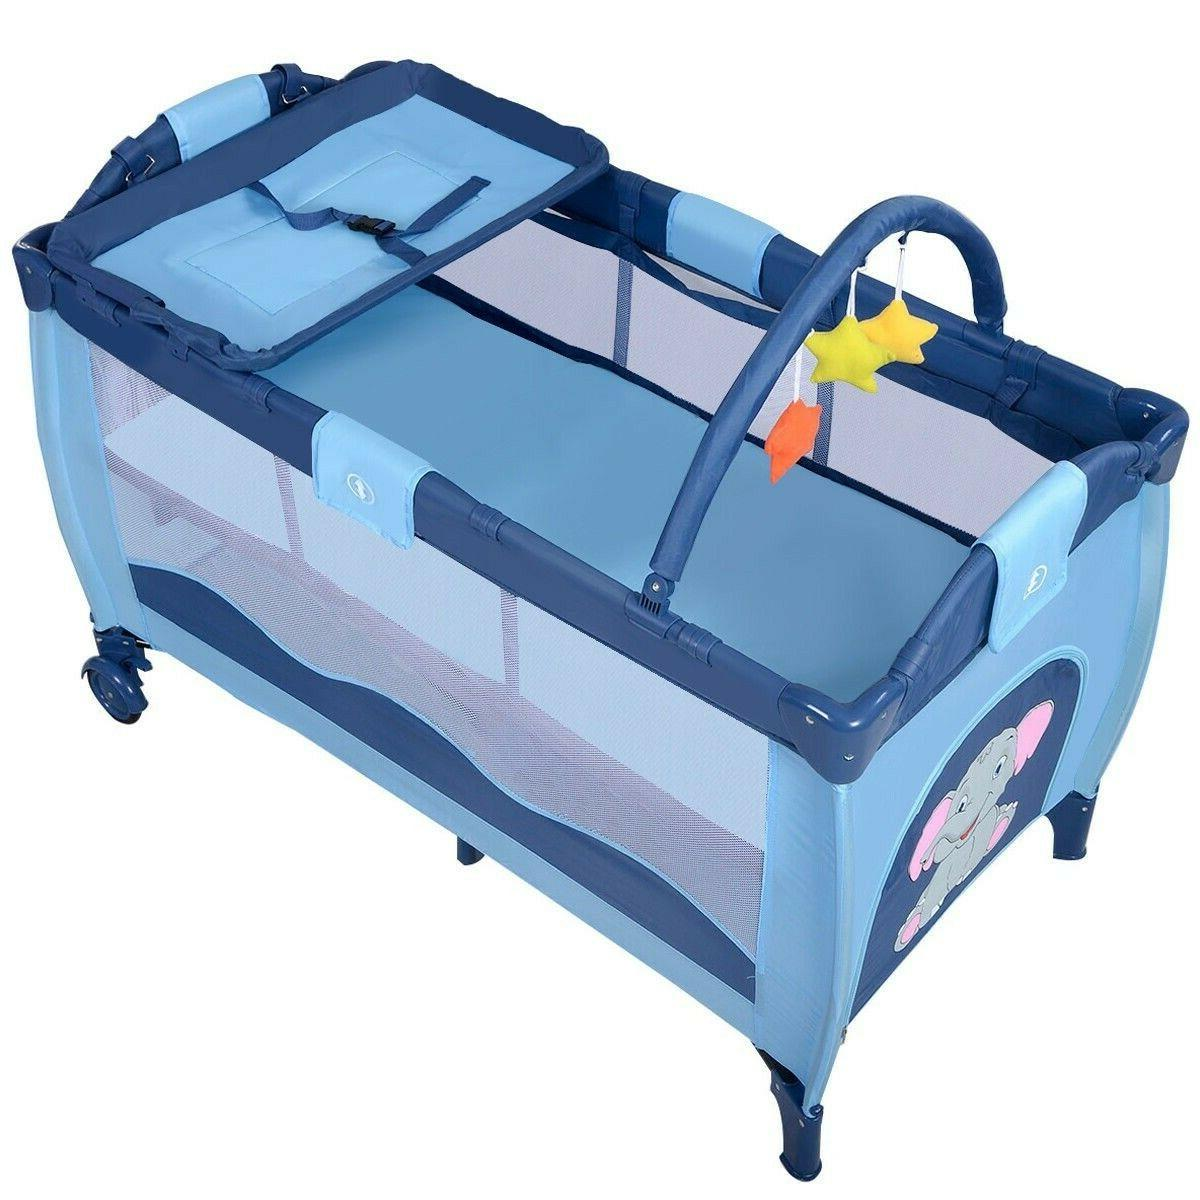 coffee crib playpen playard bassinet